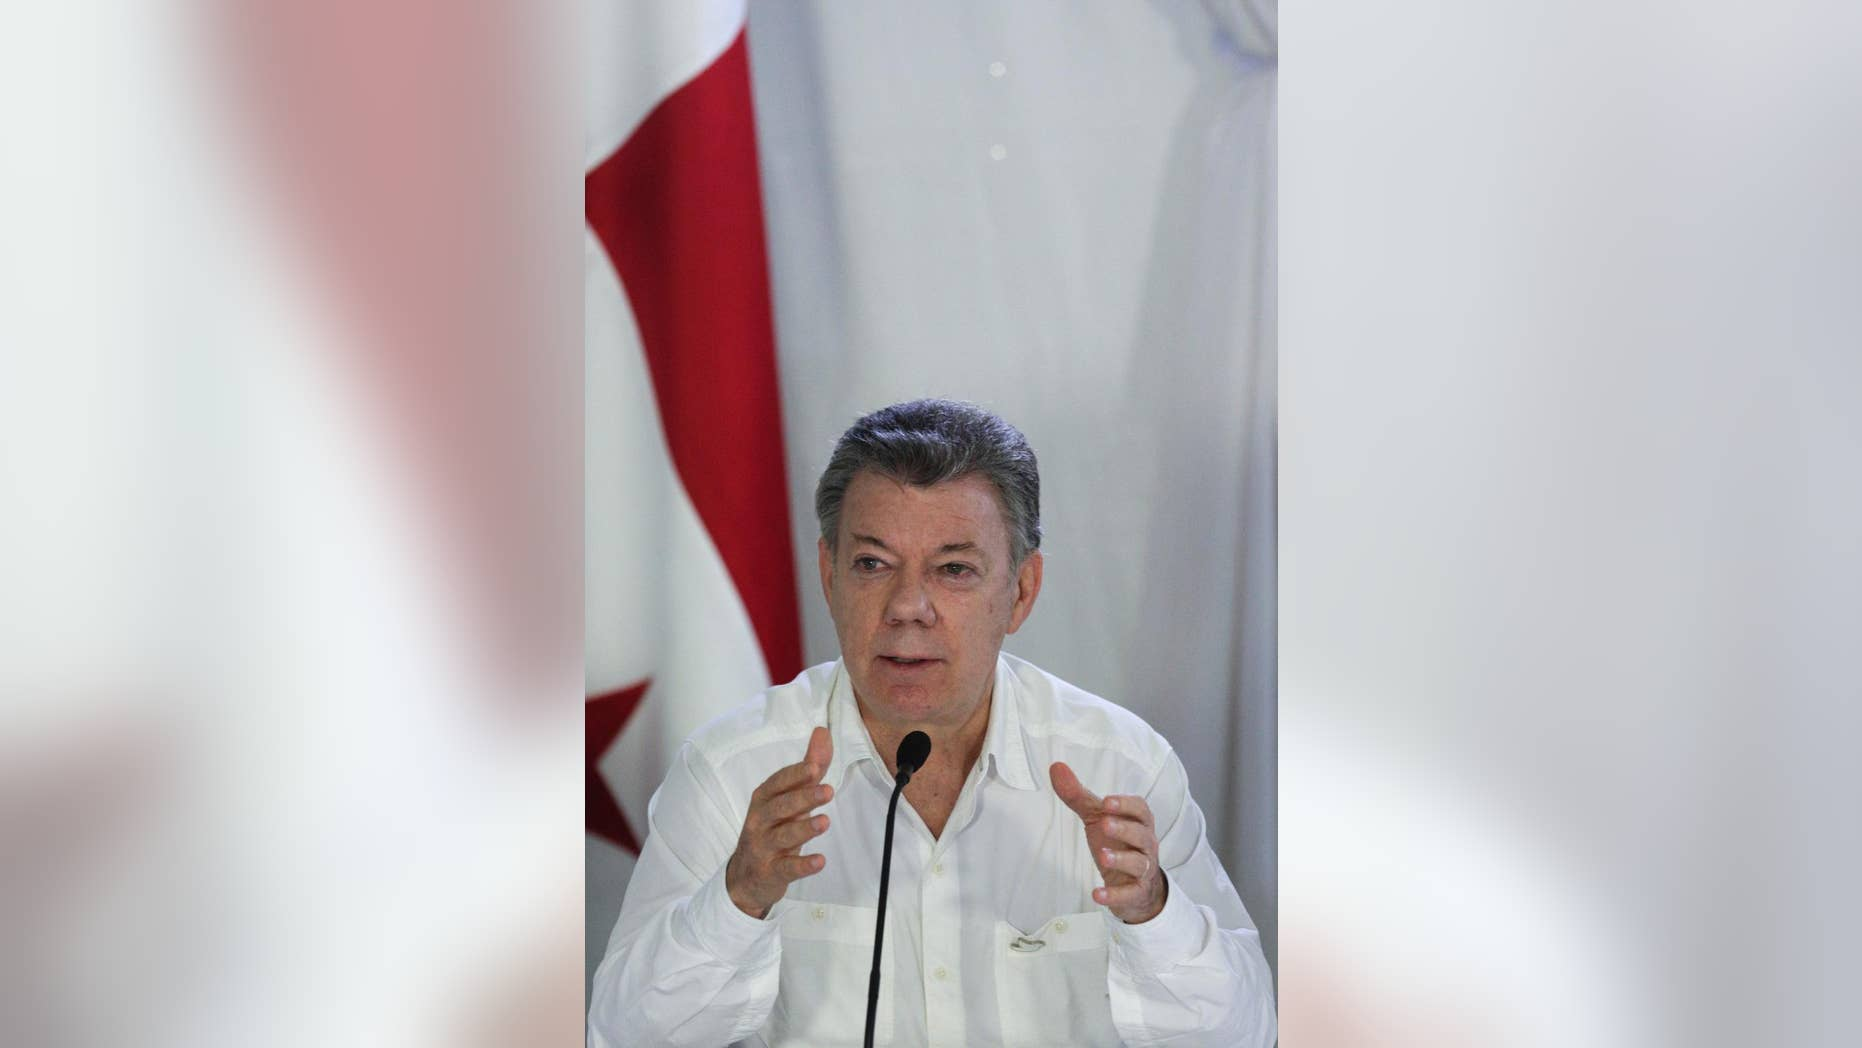 Colombia's President Juan Manuel Santos speaks during a press conference after a meeting with his Panamanian counterpart Juan Carlos Varela at the Nicanor Air Naval base in Darien province, Panama, Tuesday, Oct. 25, 2016. Santos and Varela discussed security and immigration issues between both countries. (AP Photo/Arnulfo Franco)